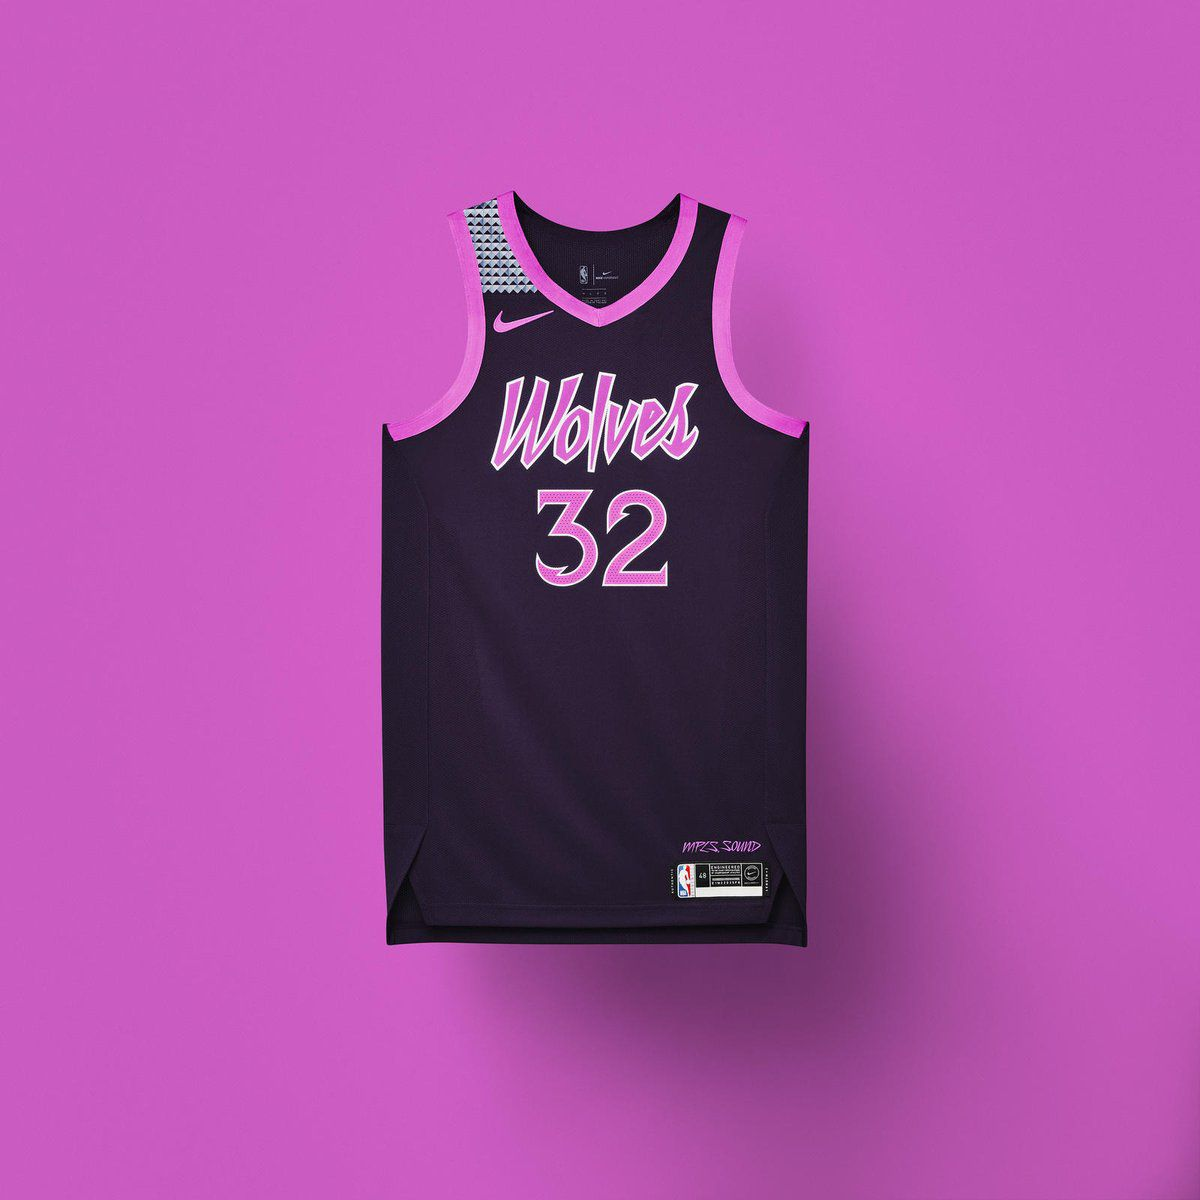 78e1b159d3a Every NBA City Edition jersey, ranked - SBNation.com